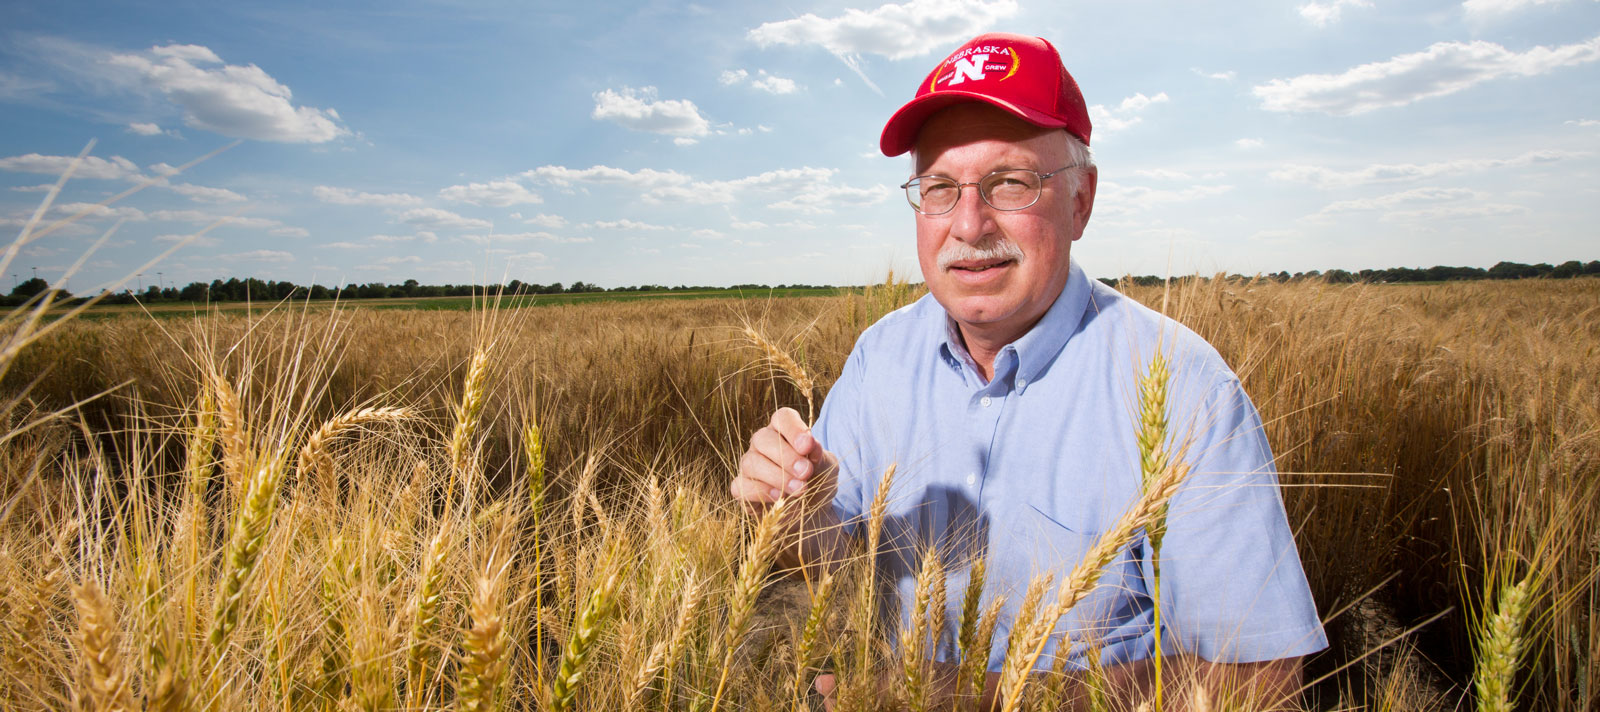 Dr. Baenziger - Small Grains Breeding